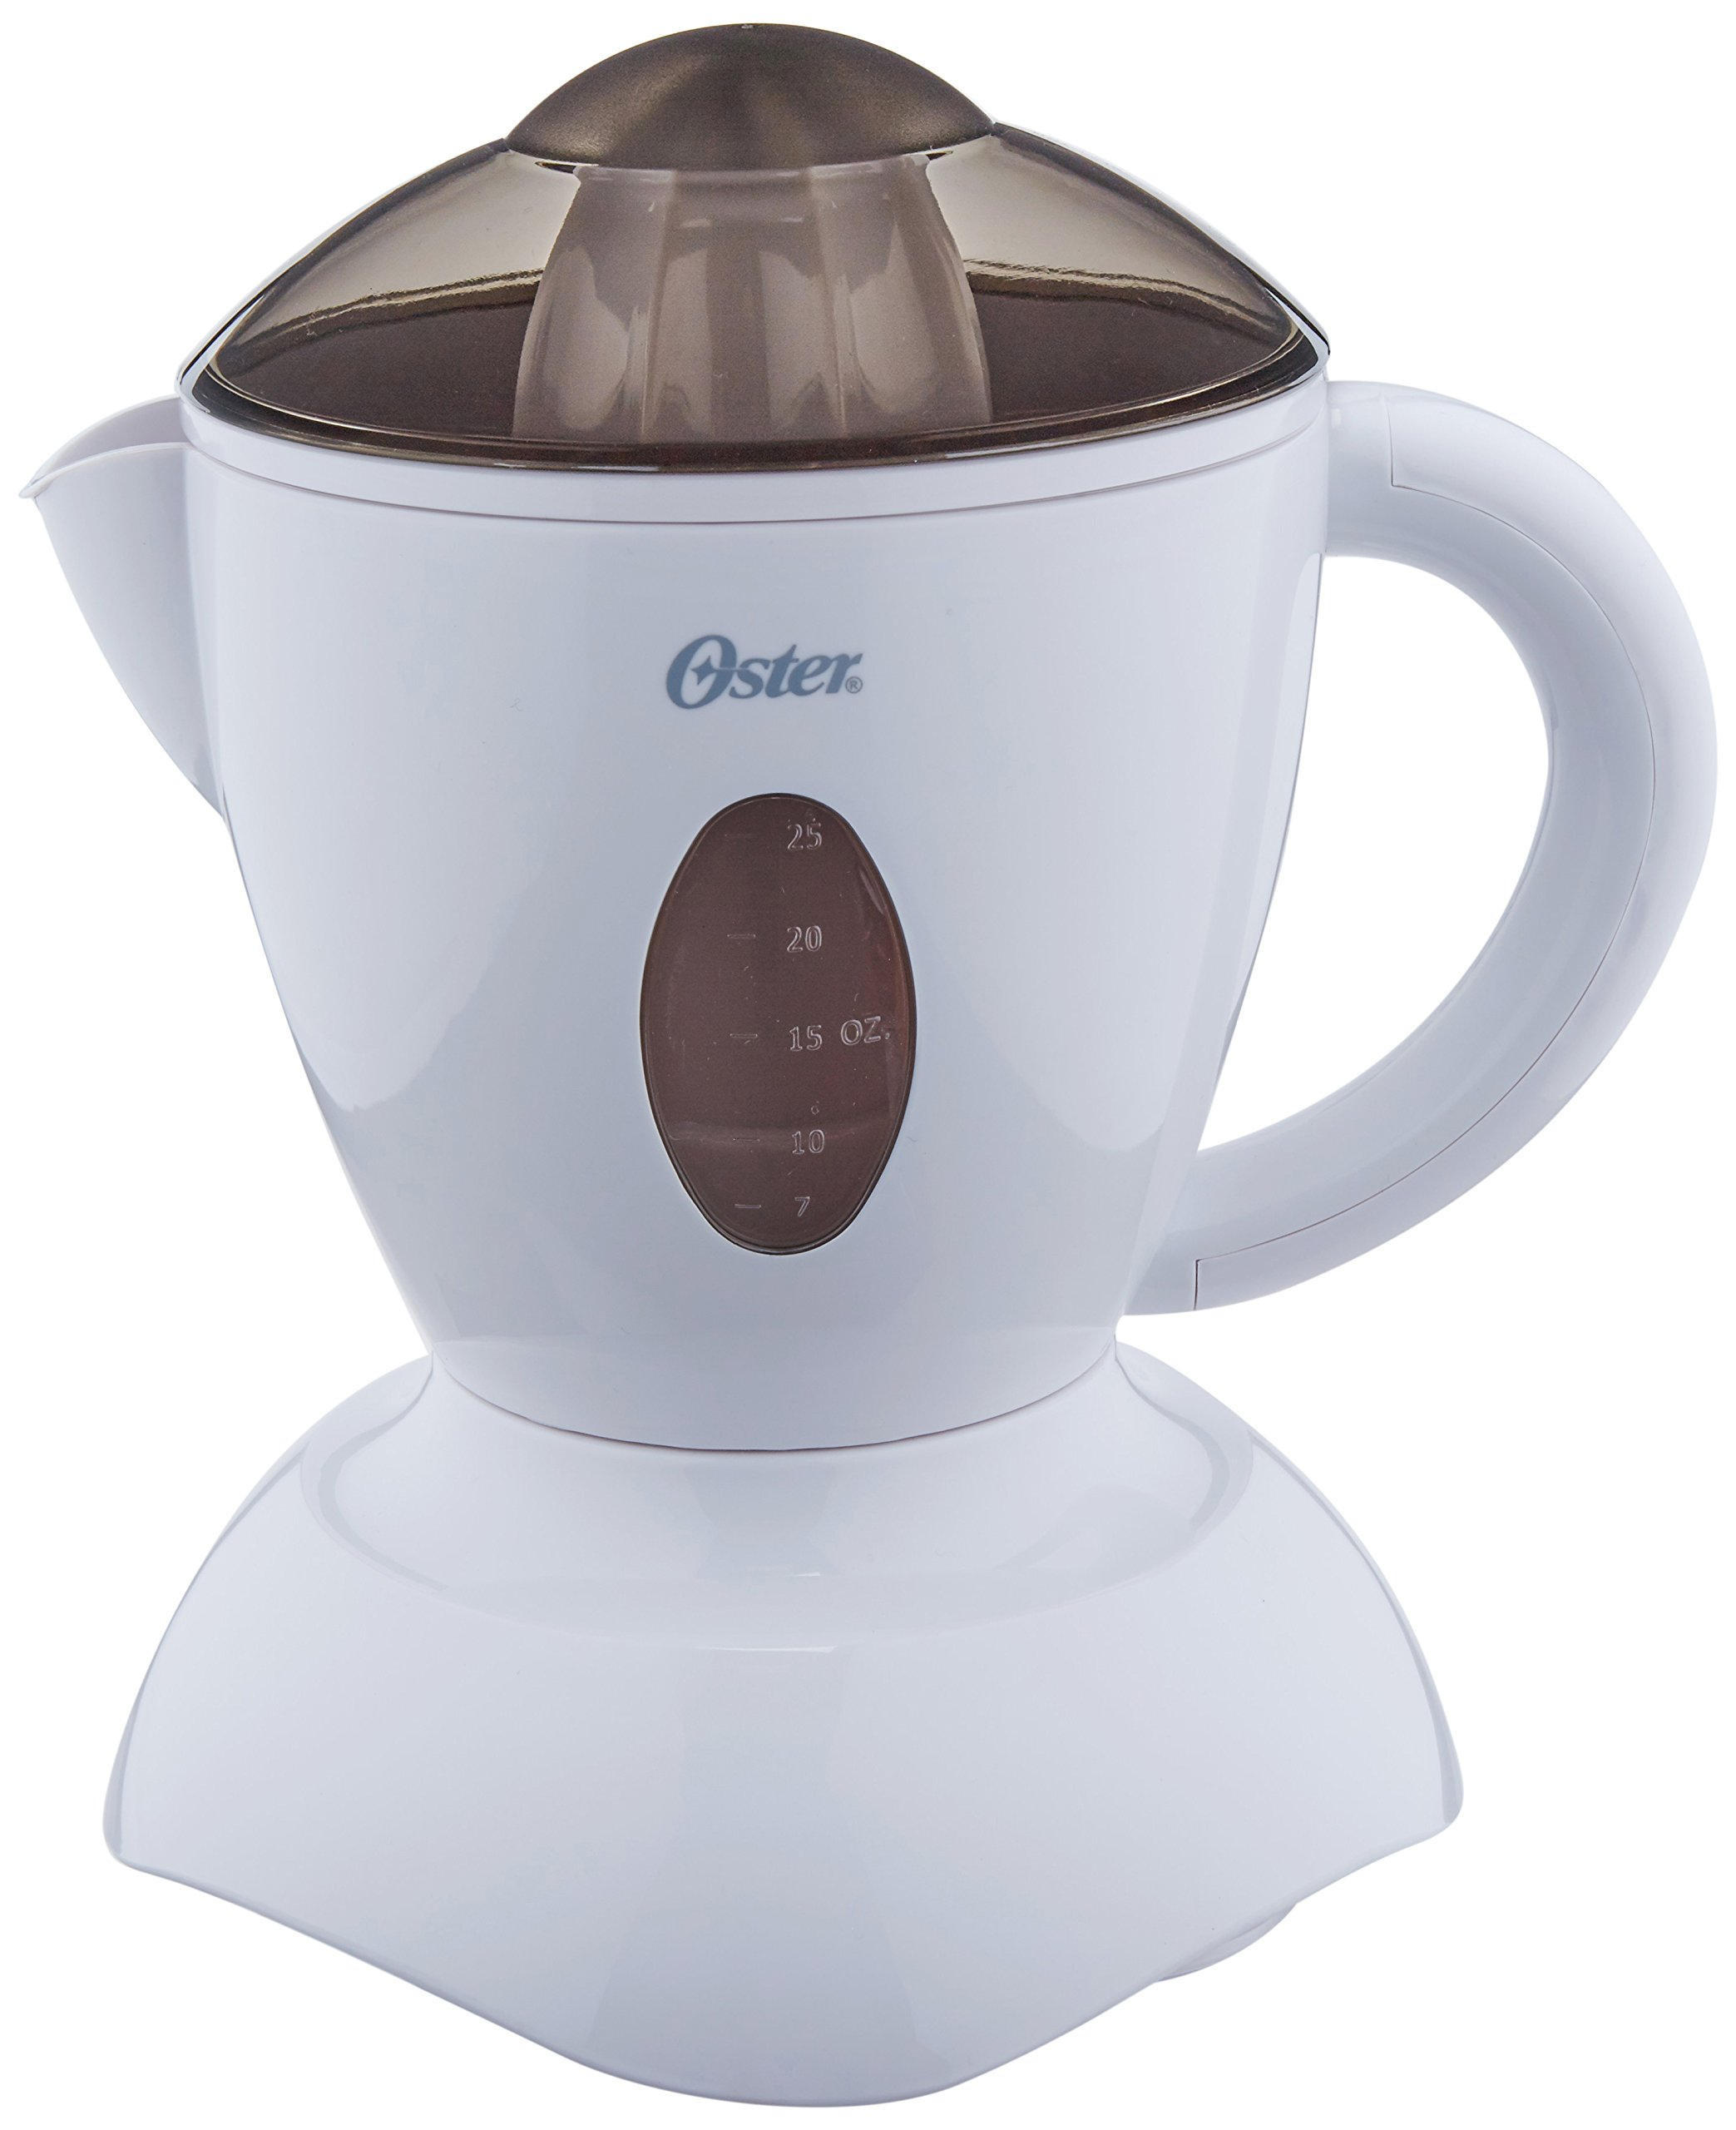 Oster 3186 Juice-n-Serve 27-Ounce Automatic Citrus Juicer, White by Oster (Image #1)